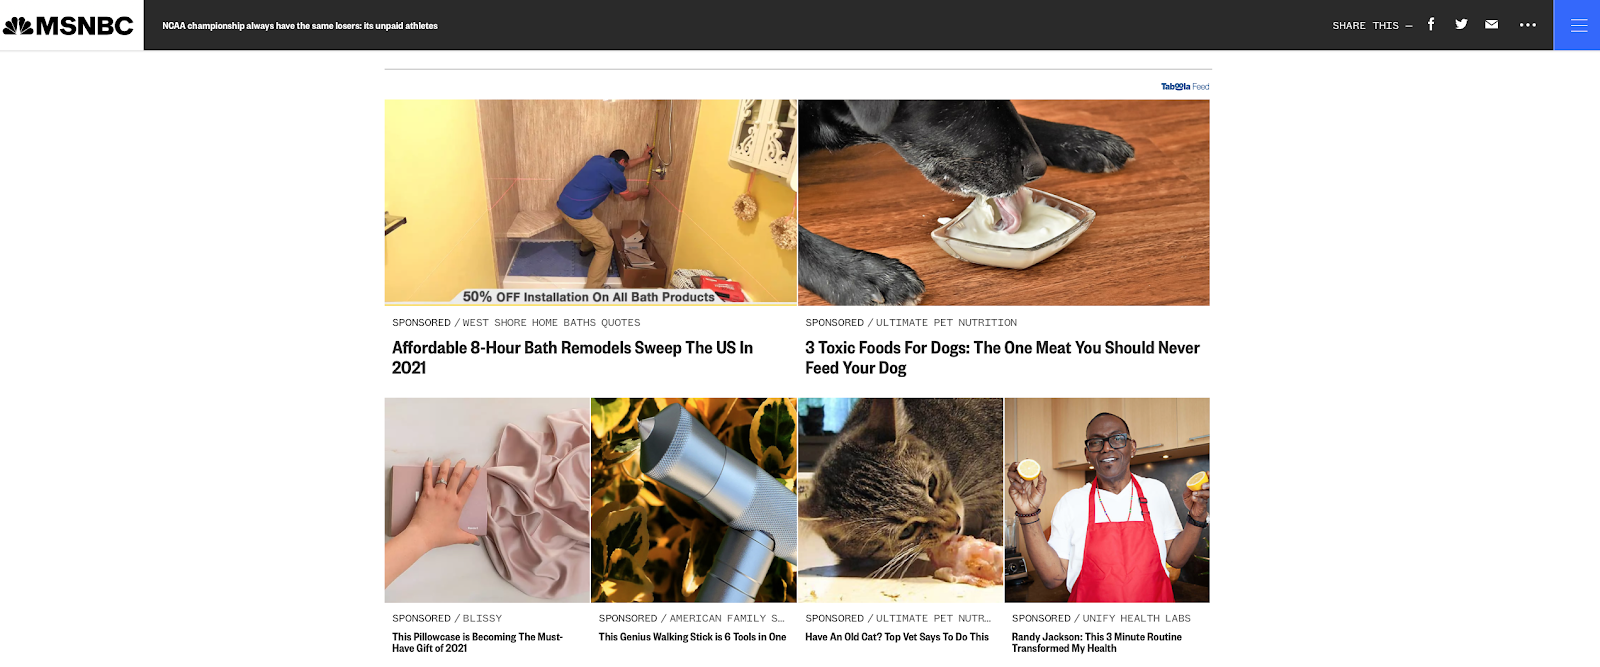 syndicated blog content by taboola on MSNBC